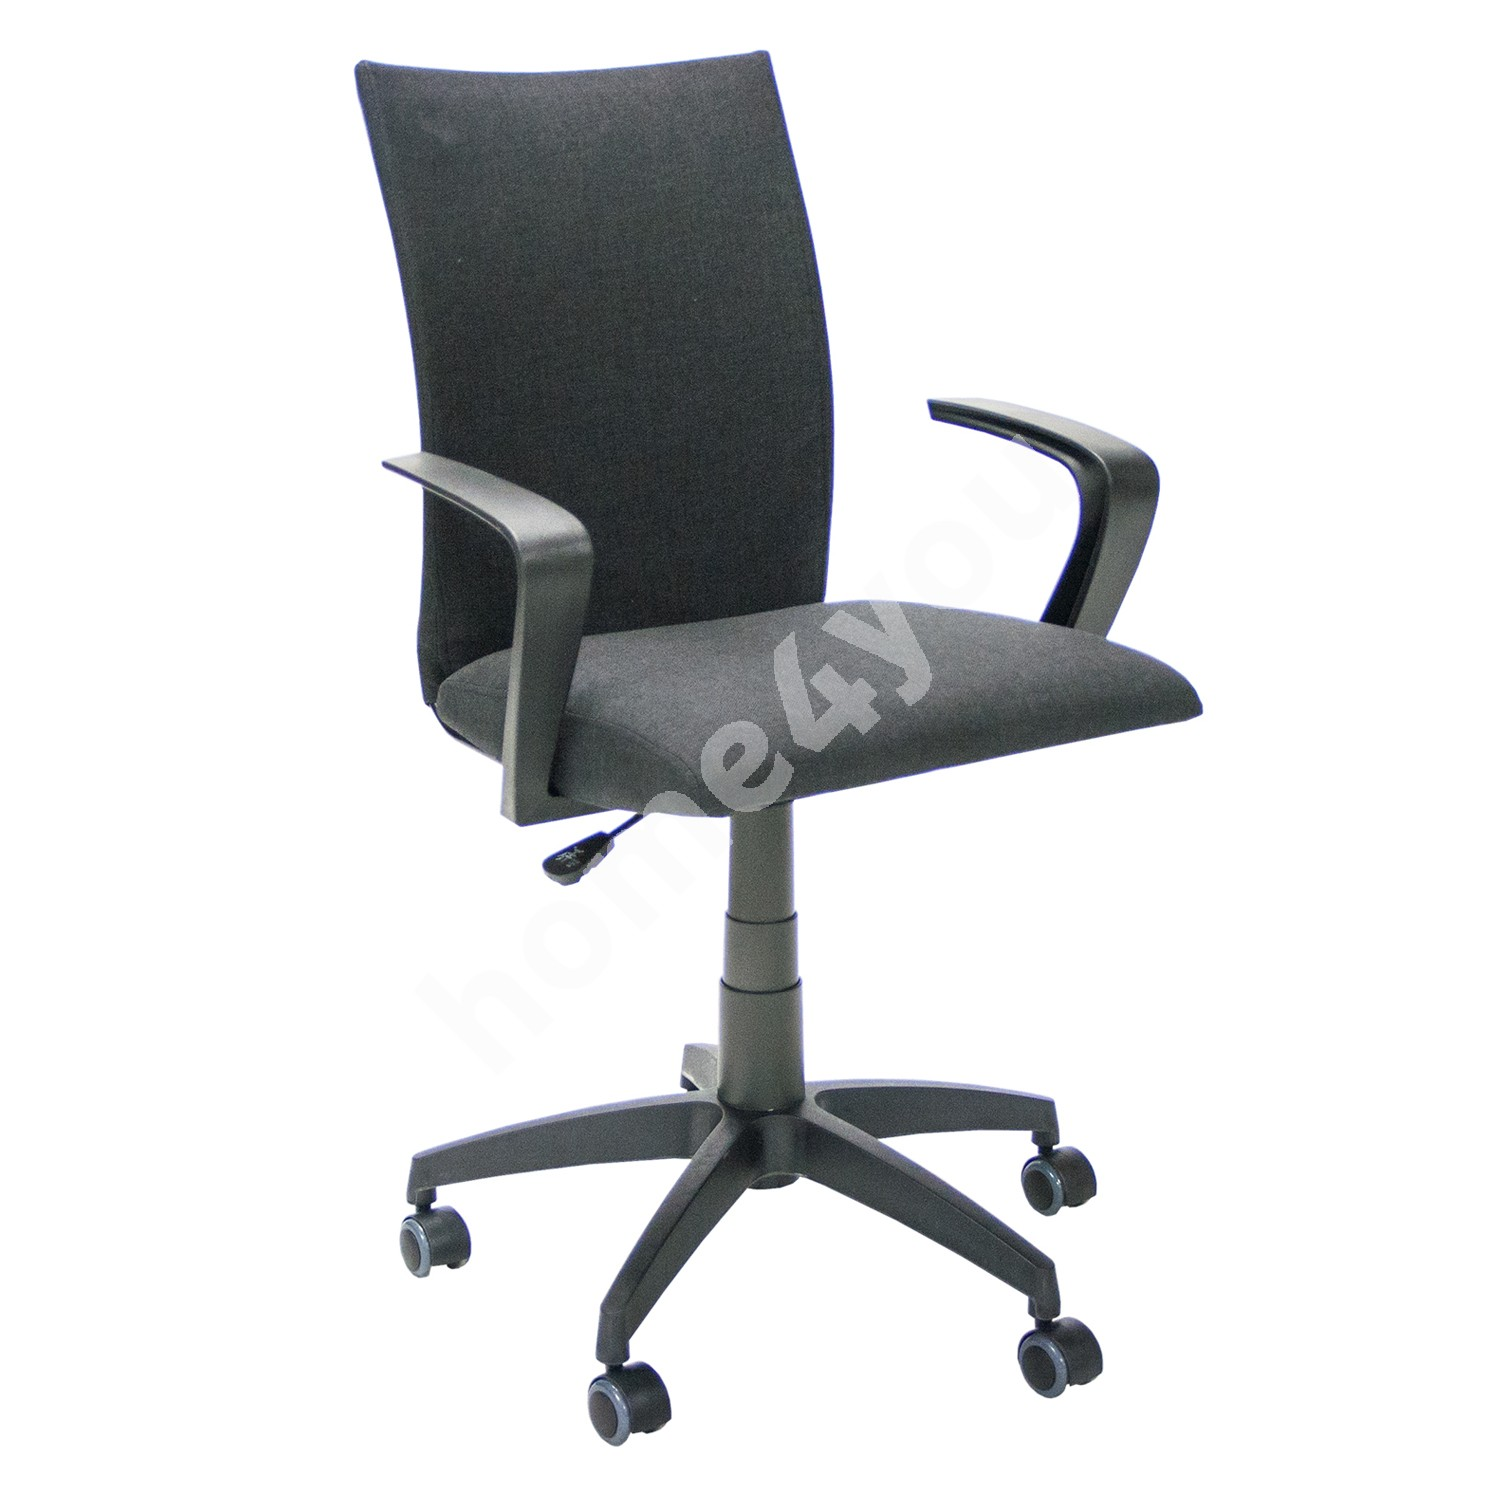 Task chair CLAUDIA 59x57xH87-96,5cm, seat and back rest: fabric, color: black